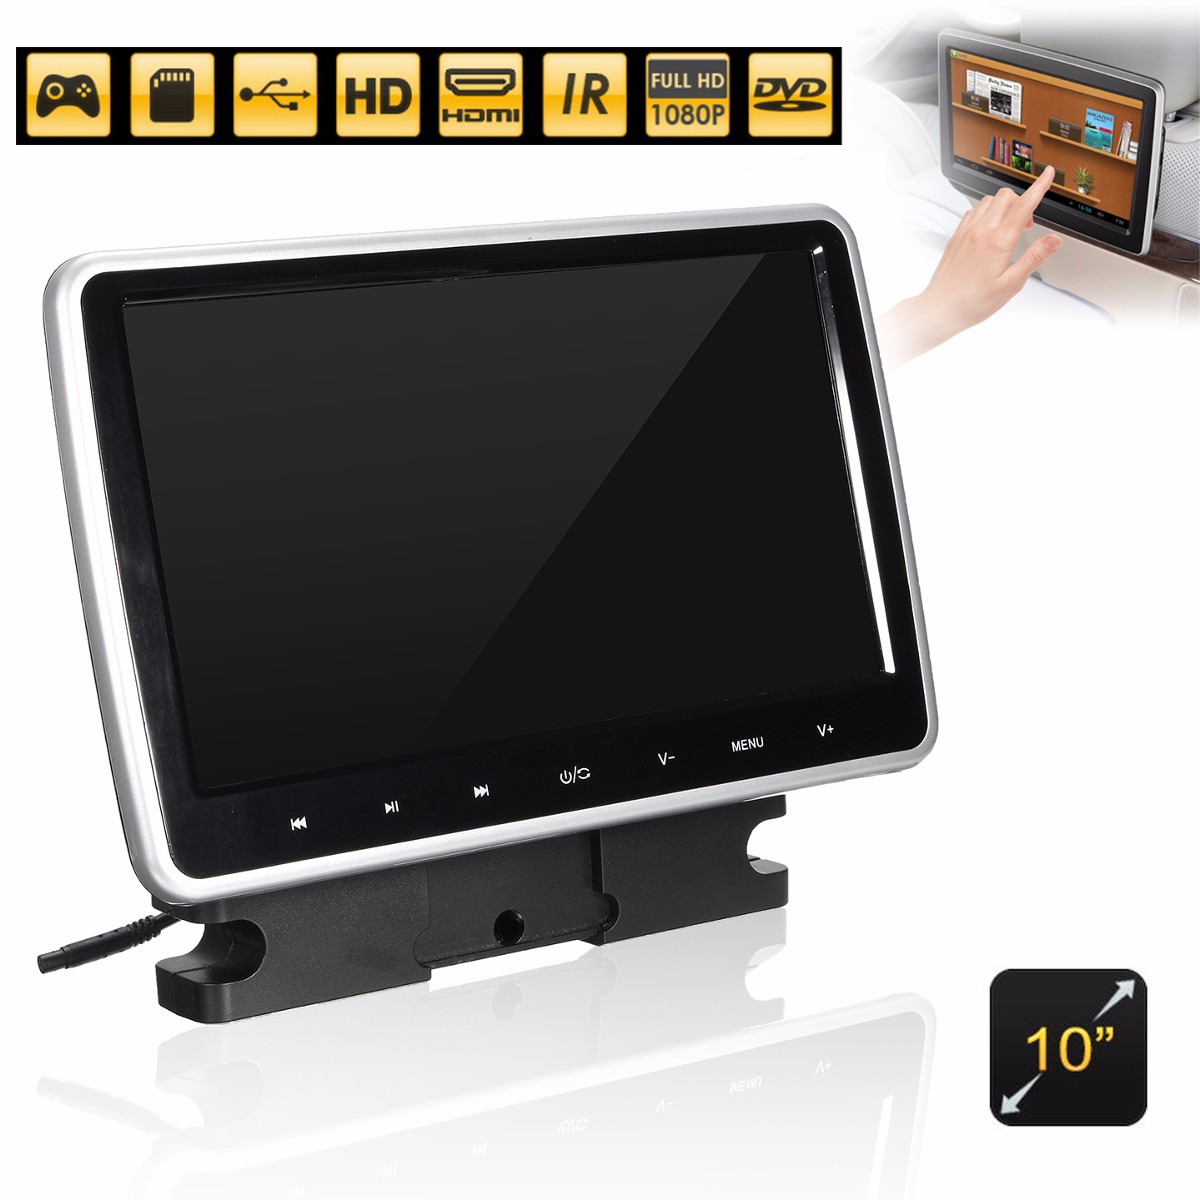 10 Inch Active HD Touch Head Rest Monitor Portable Car DVD Player Game Handle LCD